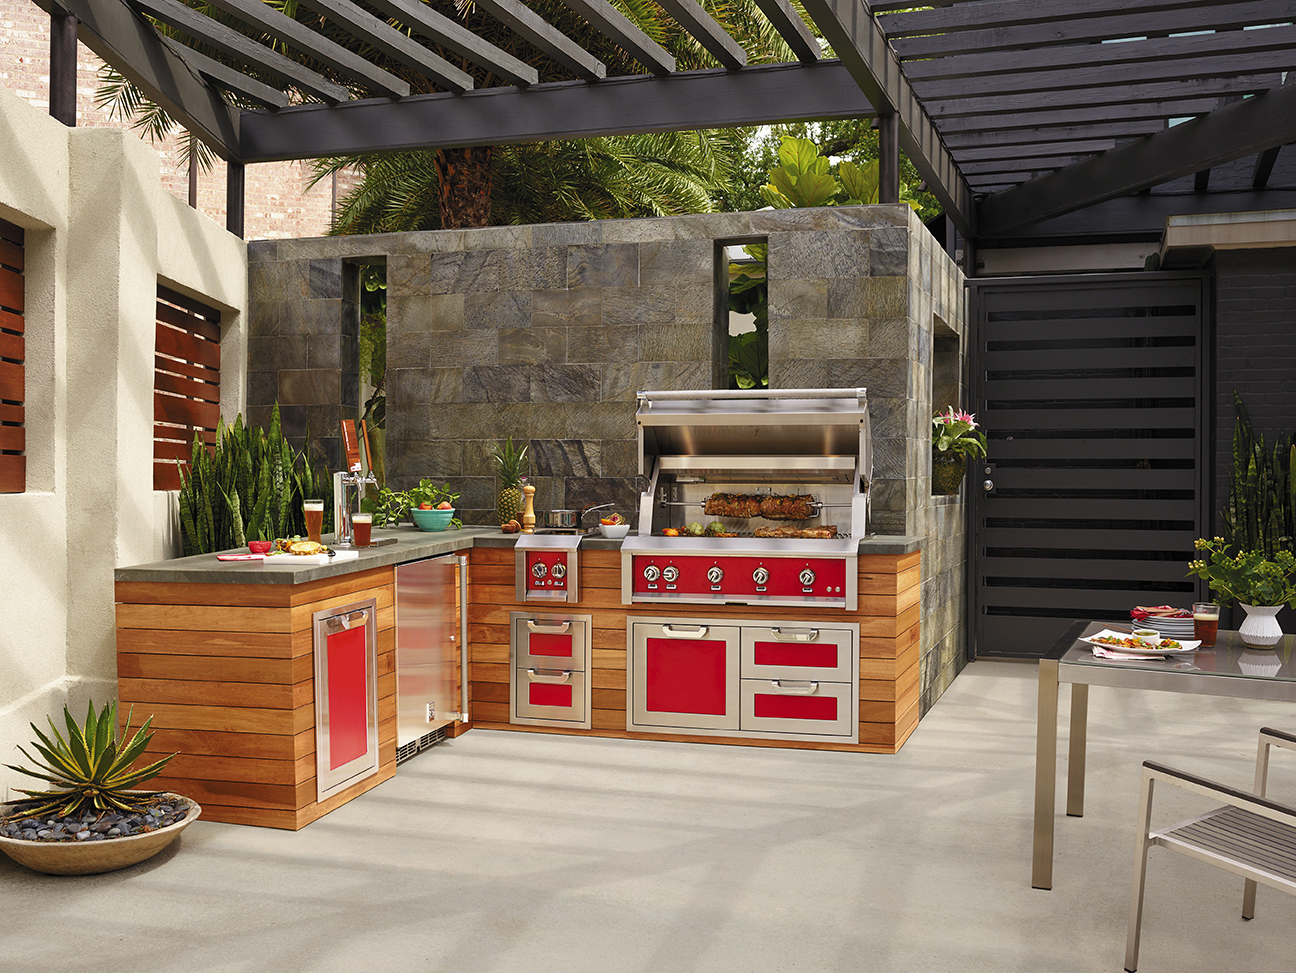 Backyard Patio kitchen with red appliances and a stone countertop with food being prepared and meat being grilled